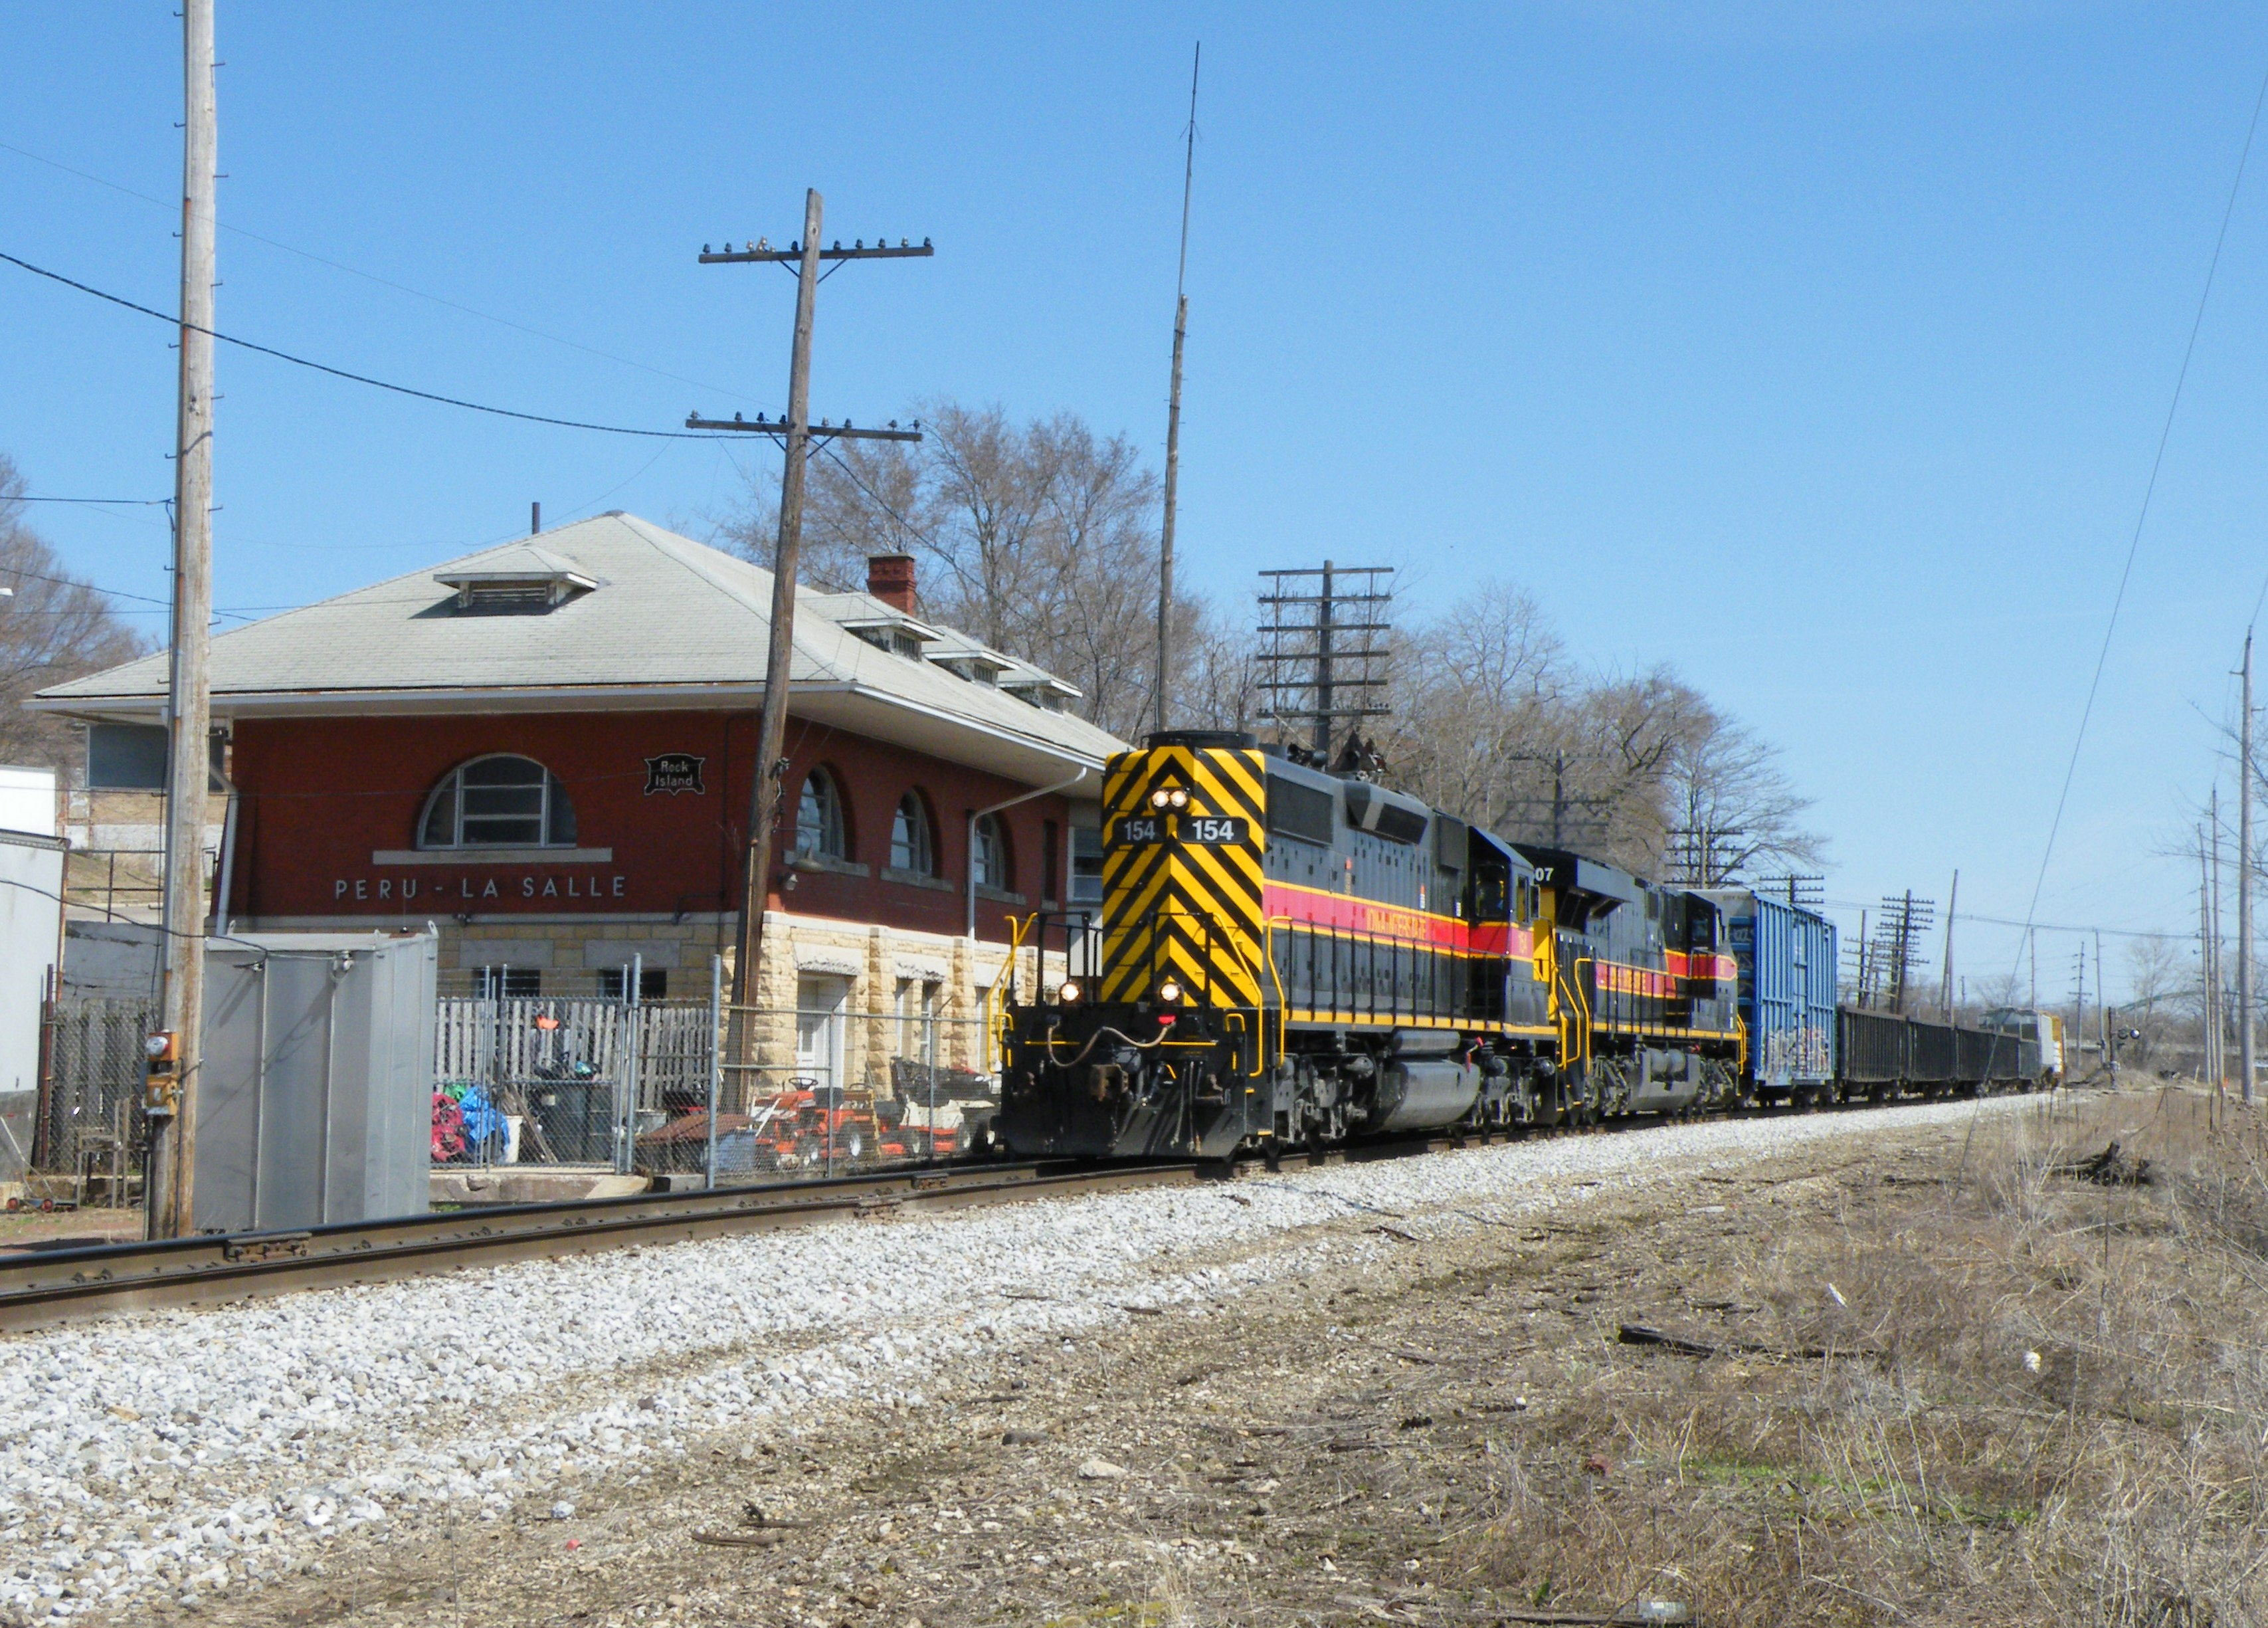 After receiving word of a second westbound departing Blue Island, I made this my last shot of Iowa 154 west and doubled back to Minooka. The train is passing the restored La Salle/Peru RI depot.